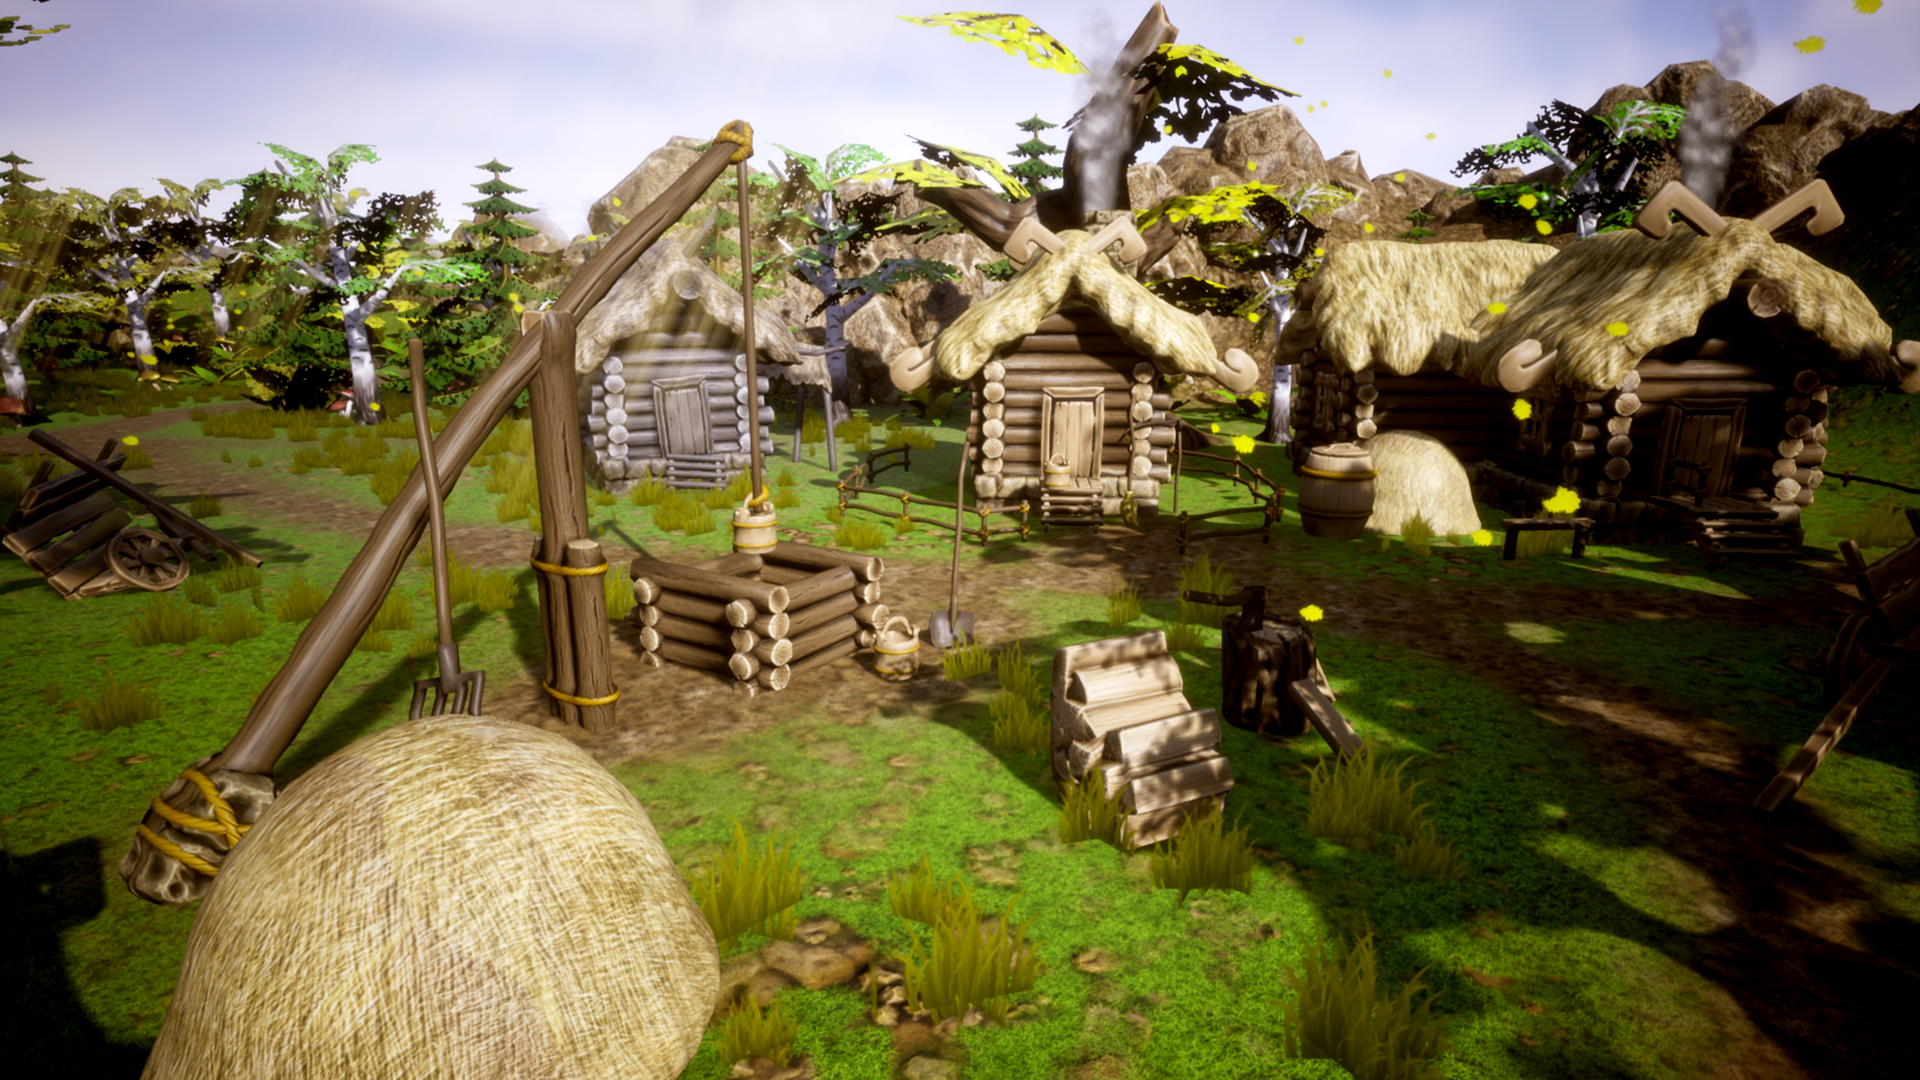 cgwell【FREE】UnrealEngine4 Stylized Village Construction Kit FOR4.2082 作者:古越神魇 帖子ID:100462